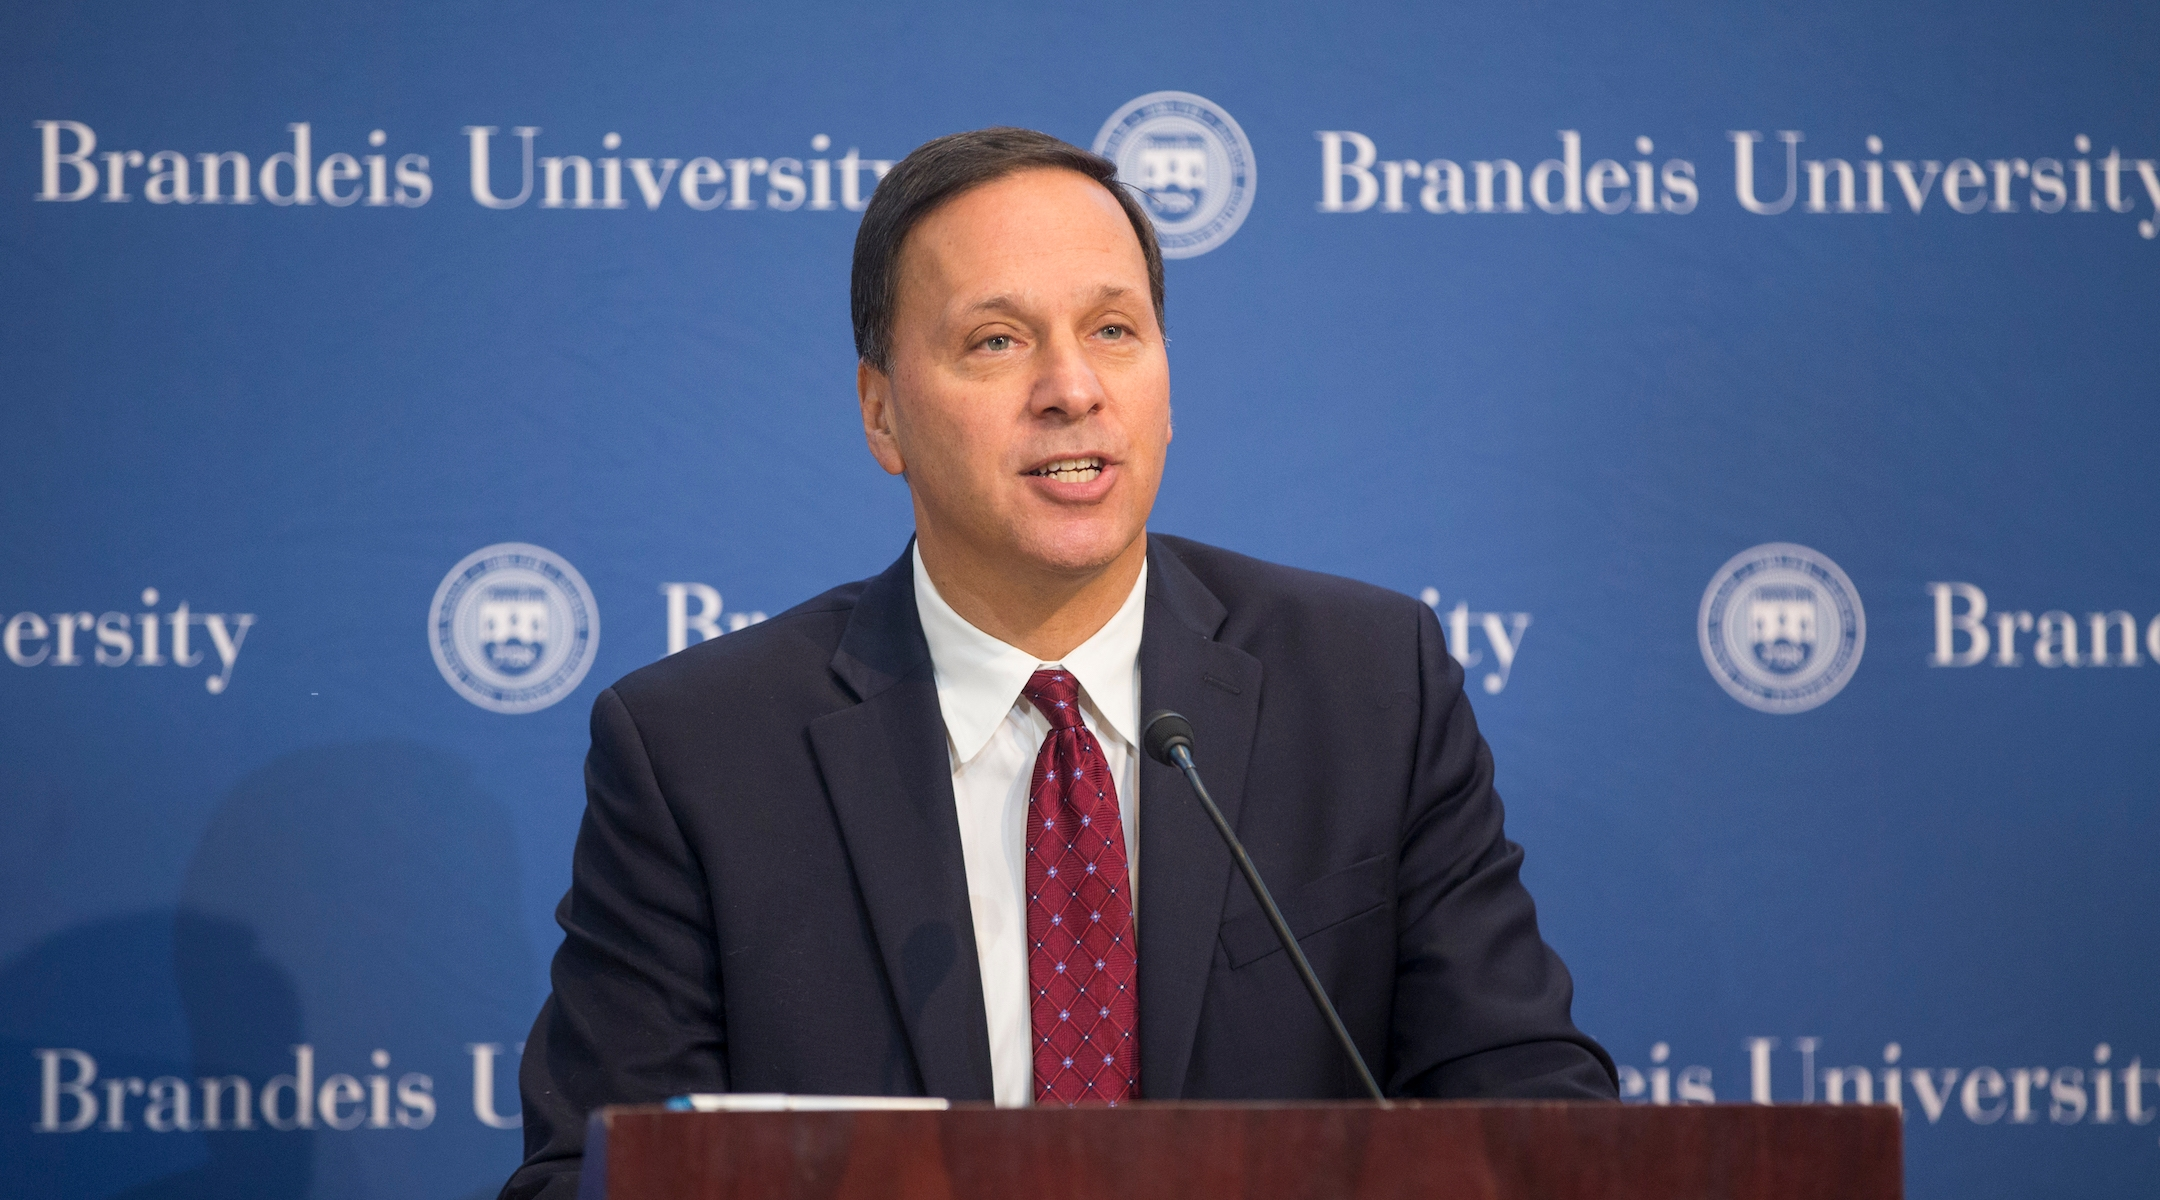 Brandeis president signs 5-year contract renewal after dispute with university's board